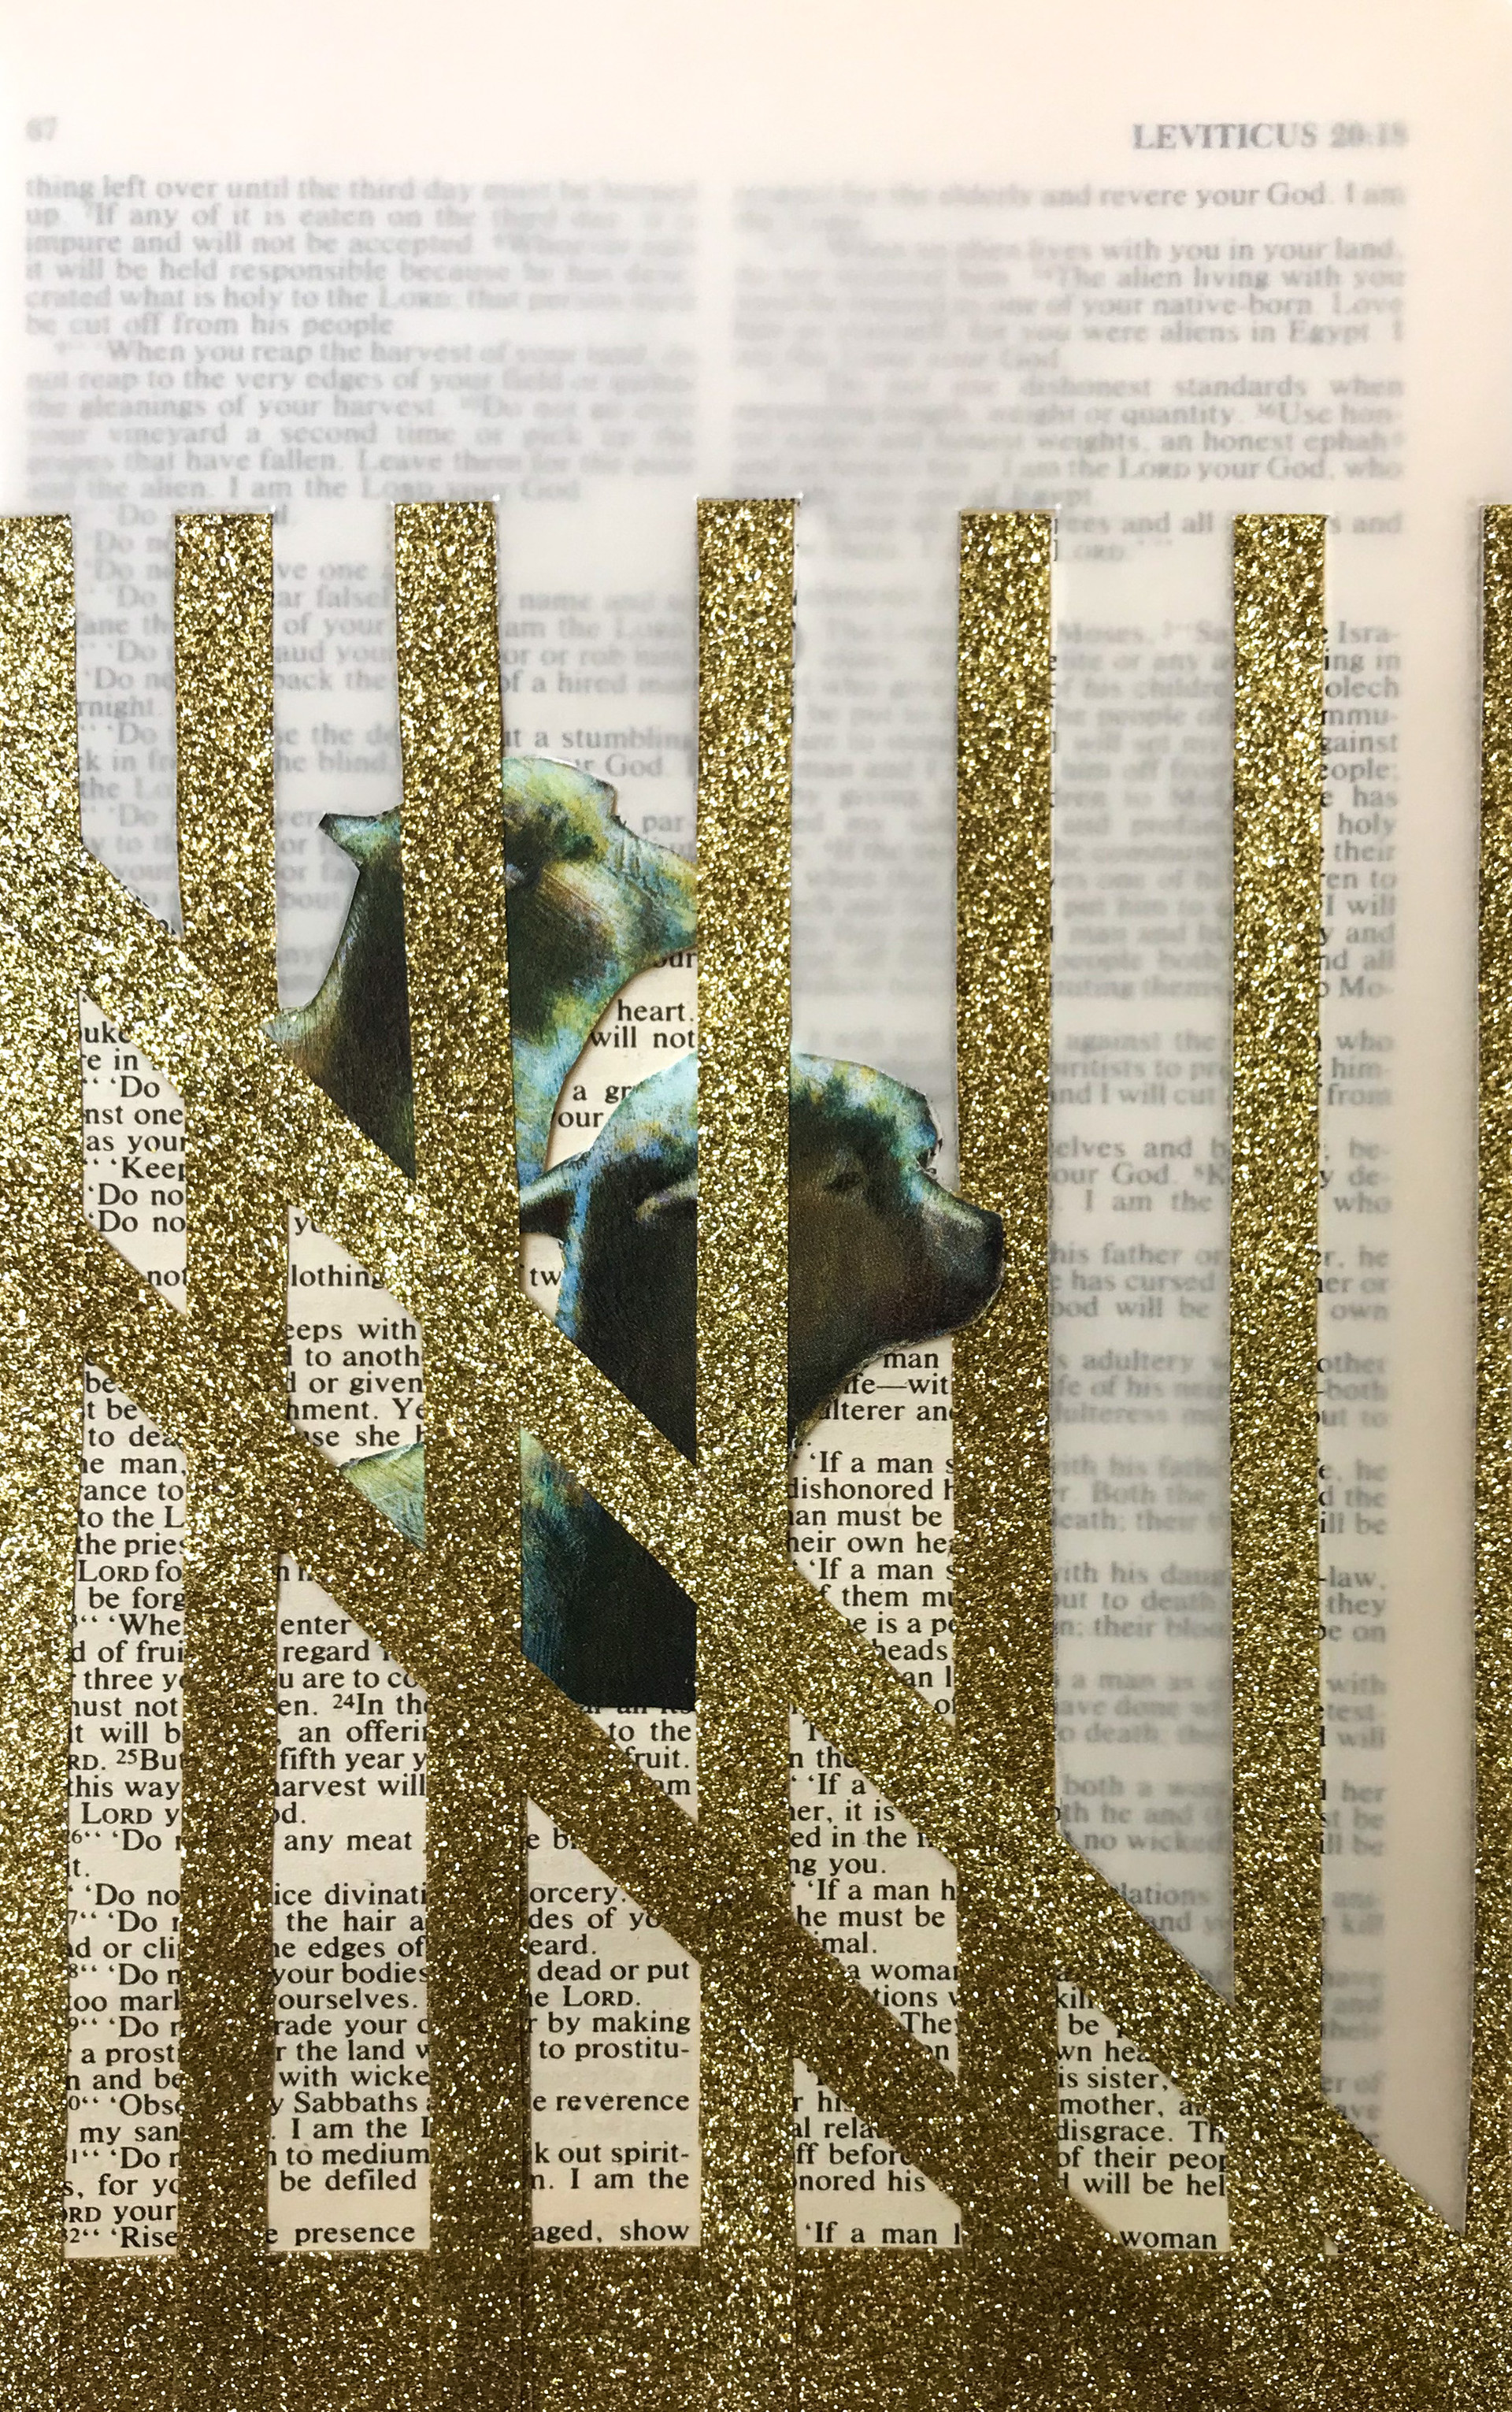 Thinly Veiled Threats Collage and Vellum on Bible 2020